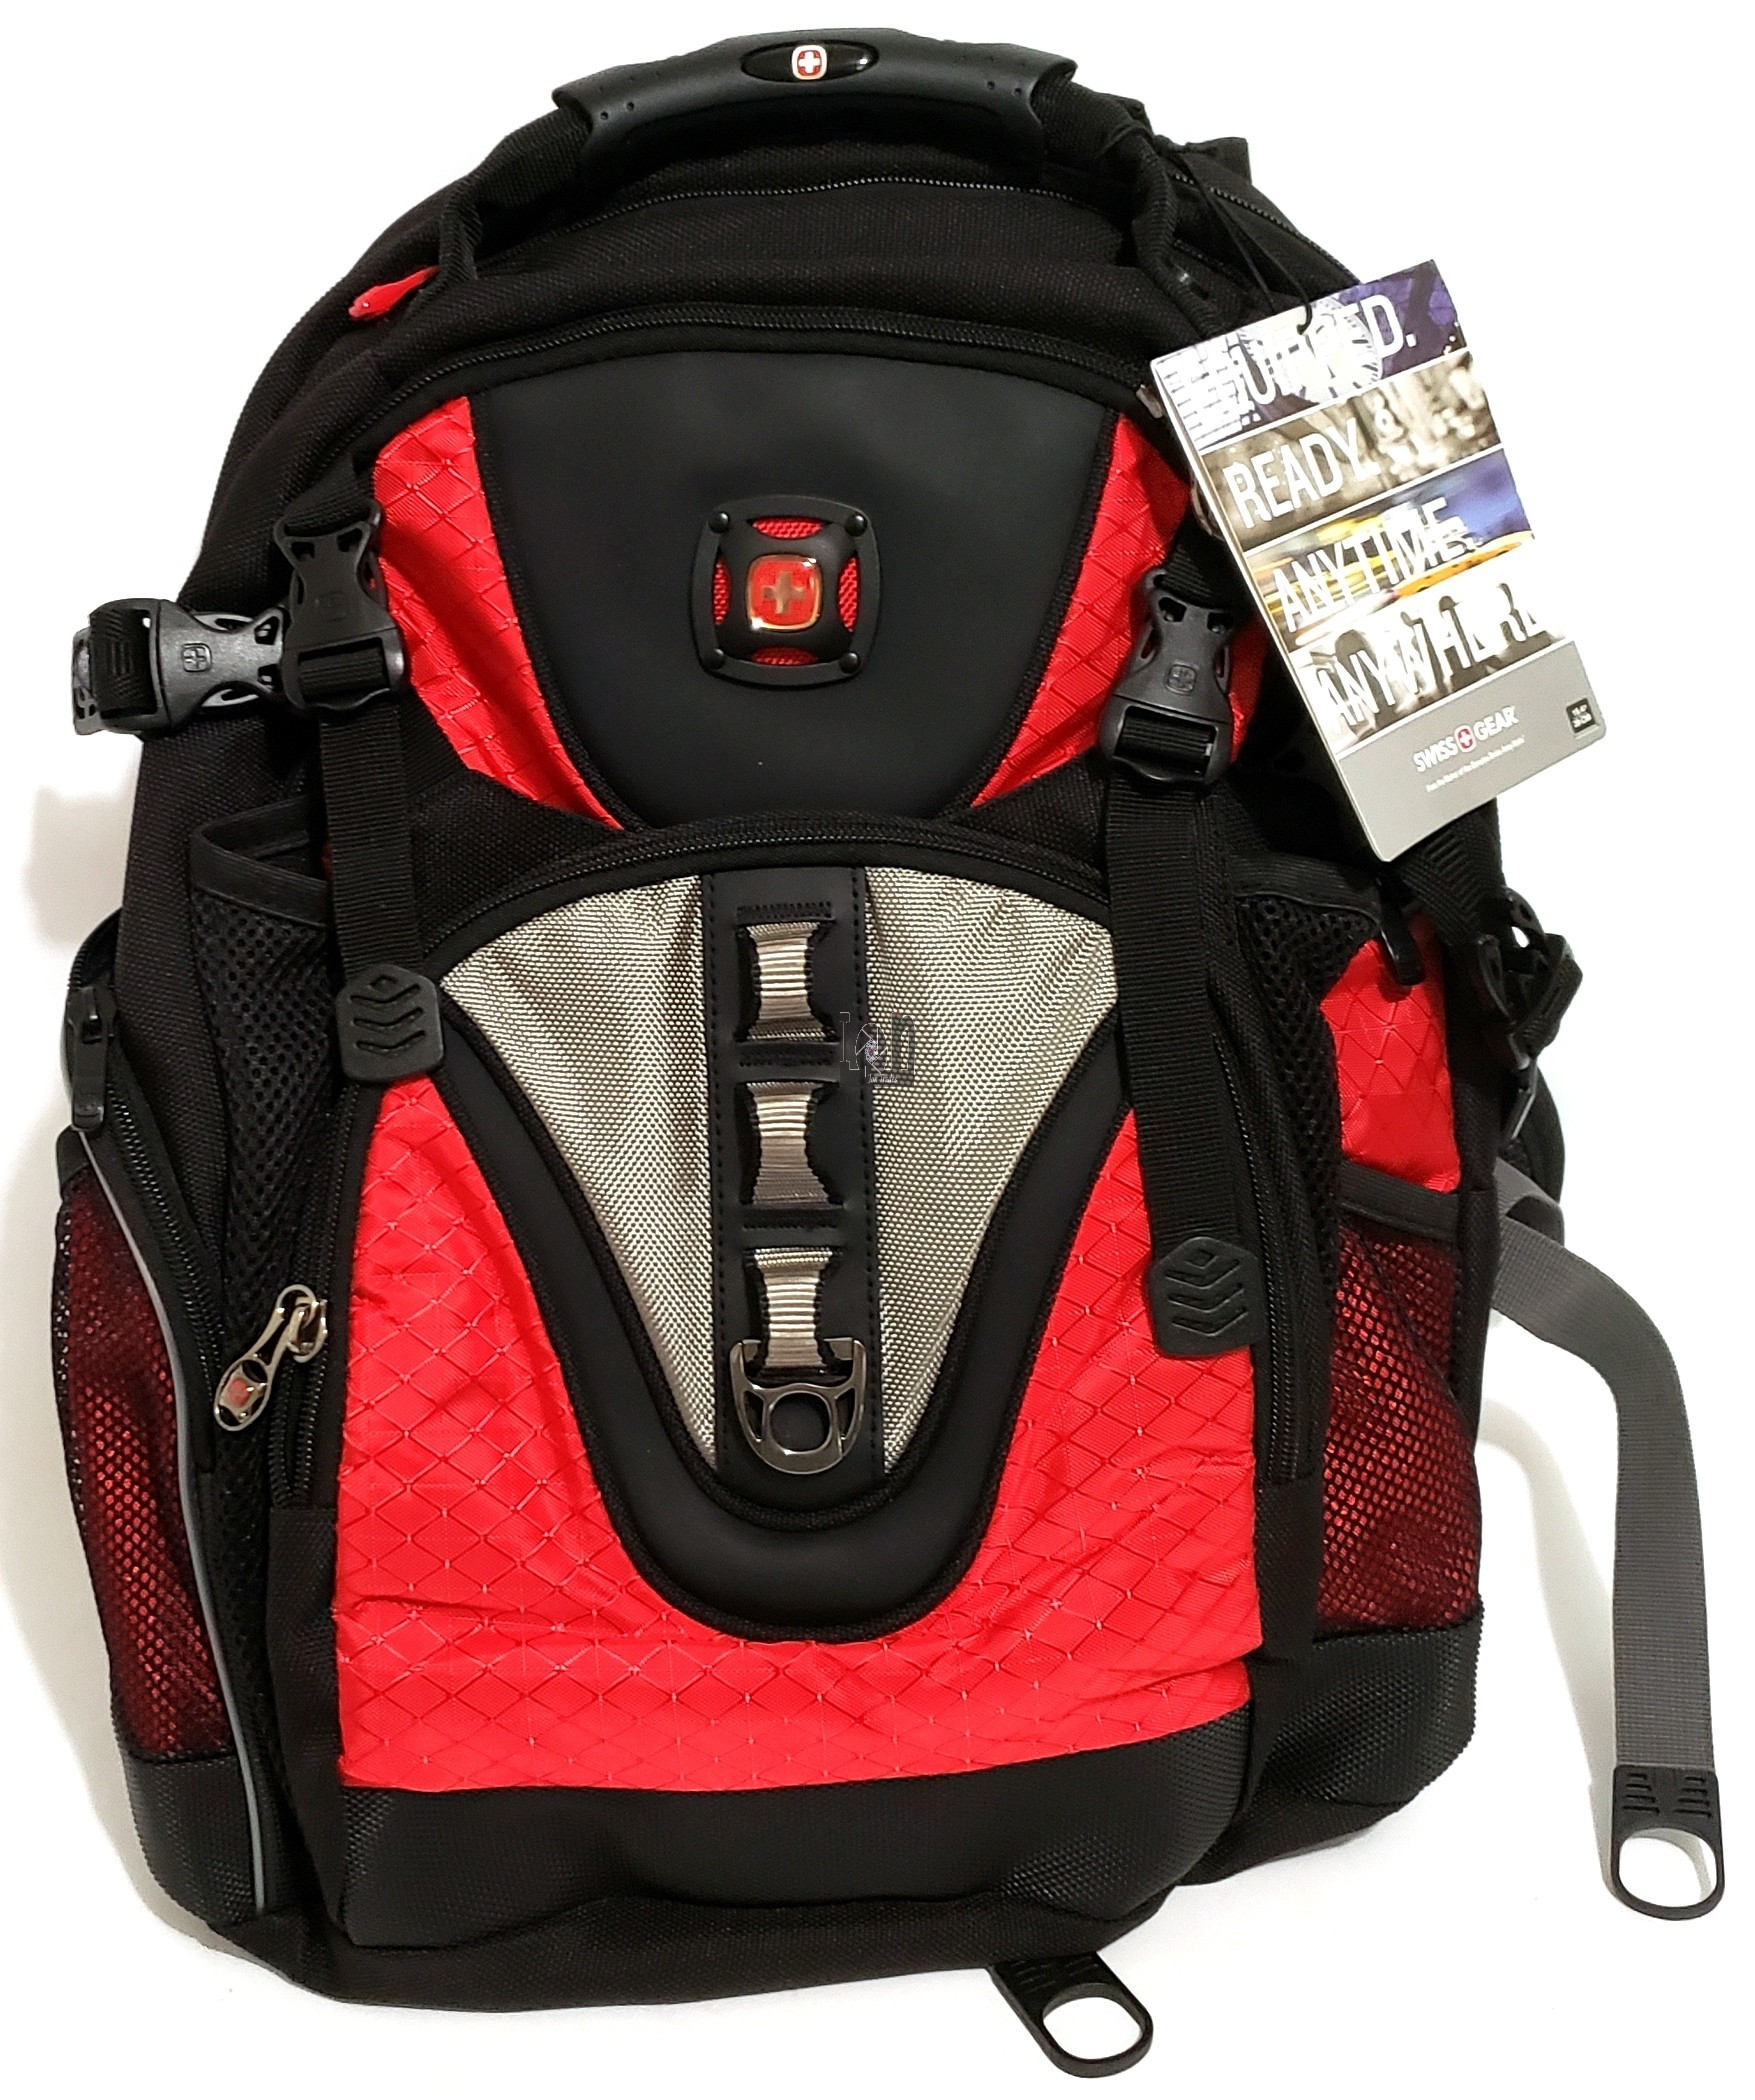 Swissgear Maxxum Backpack Red Laptop Back Pack Bag